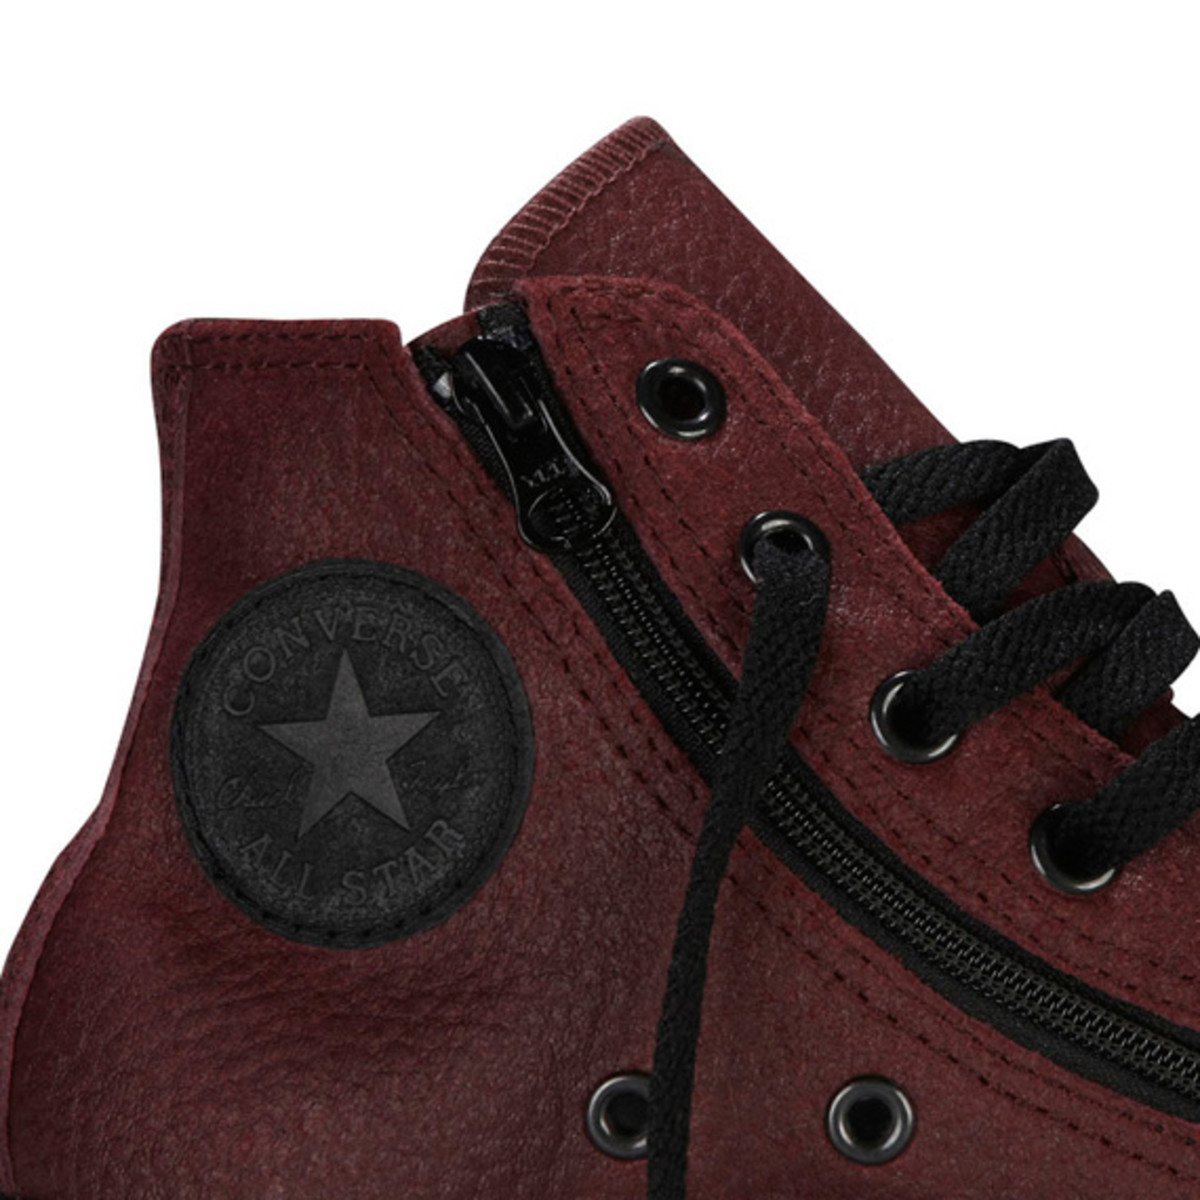 CONVERSE Chuck Taylor All Star Double Zip - Fall 2013 Collection - 8